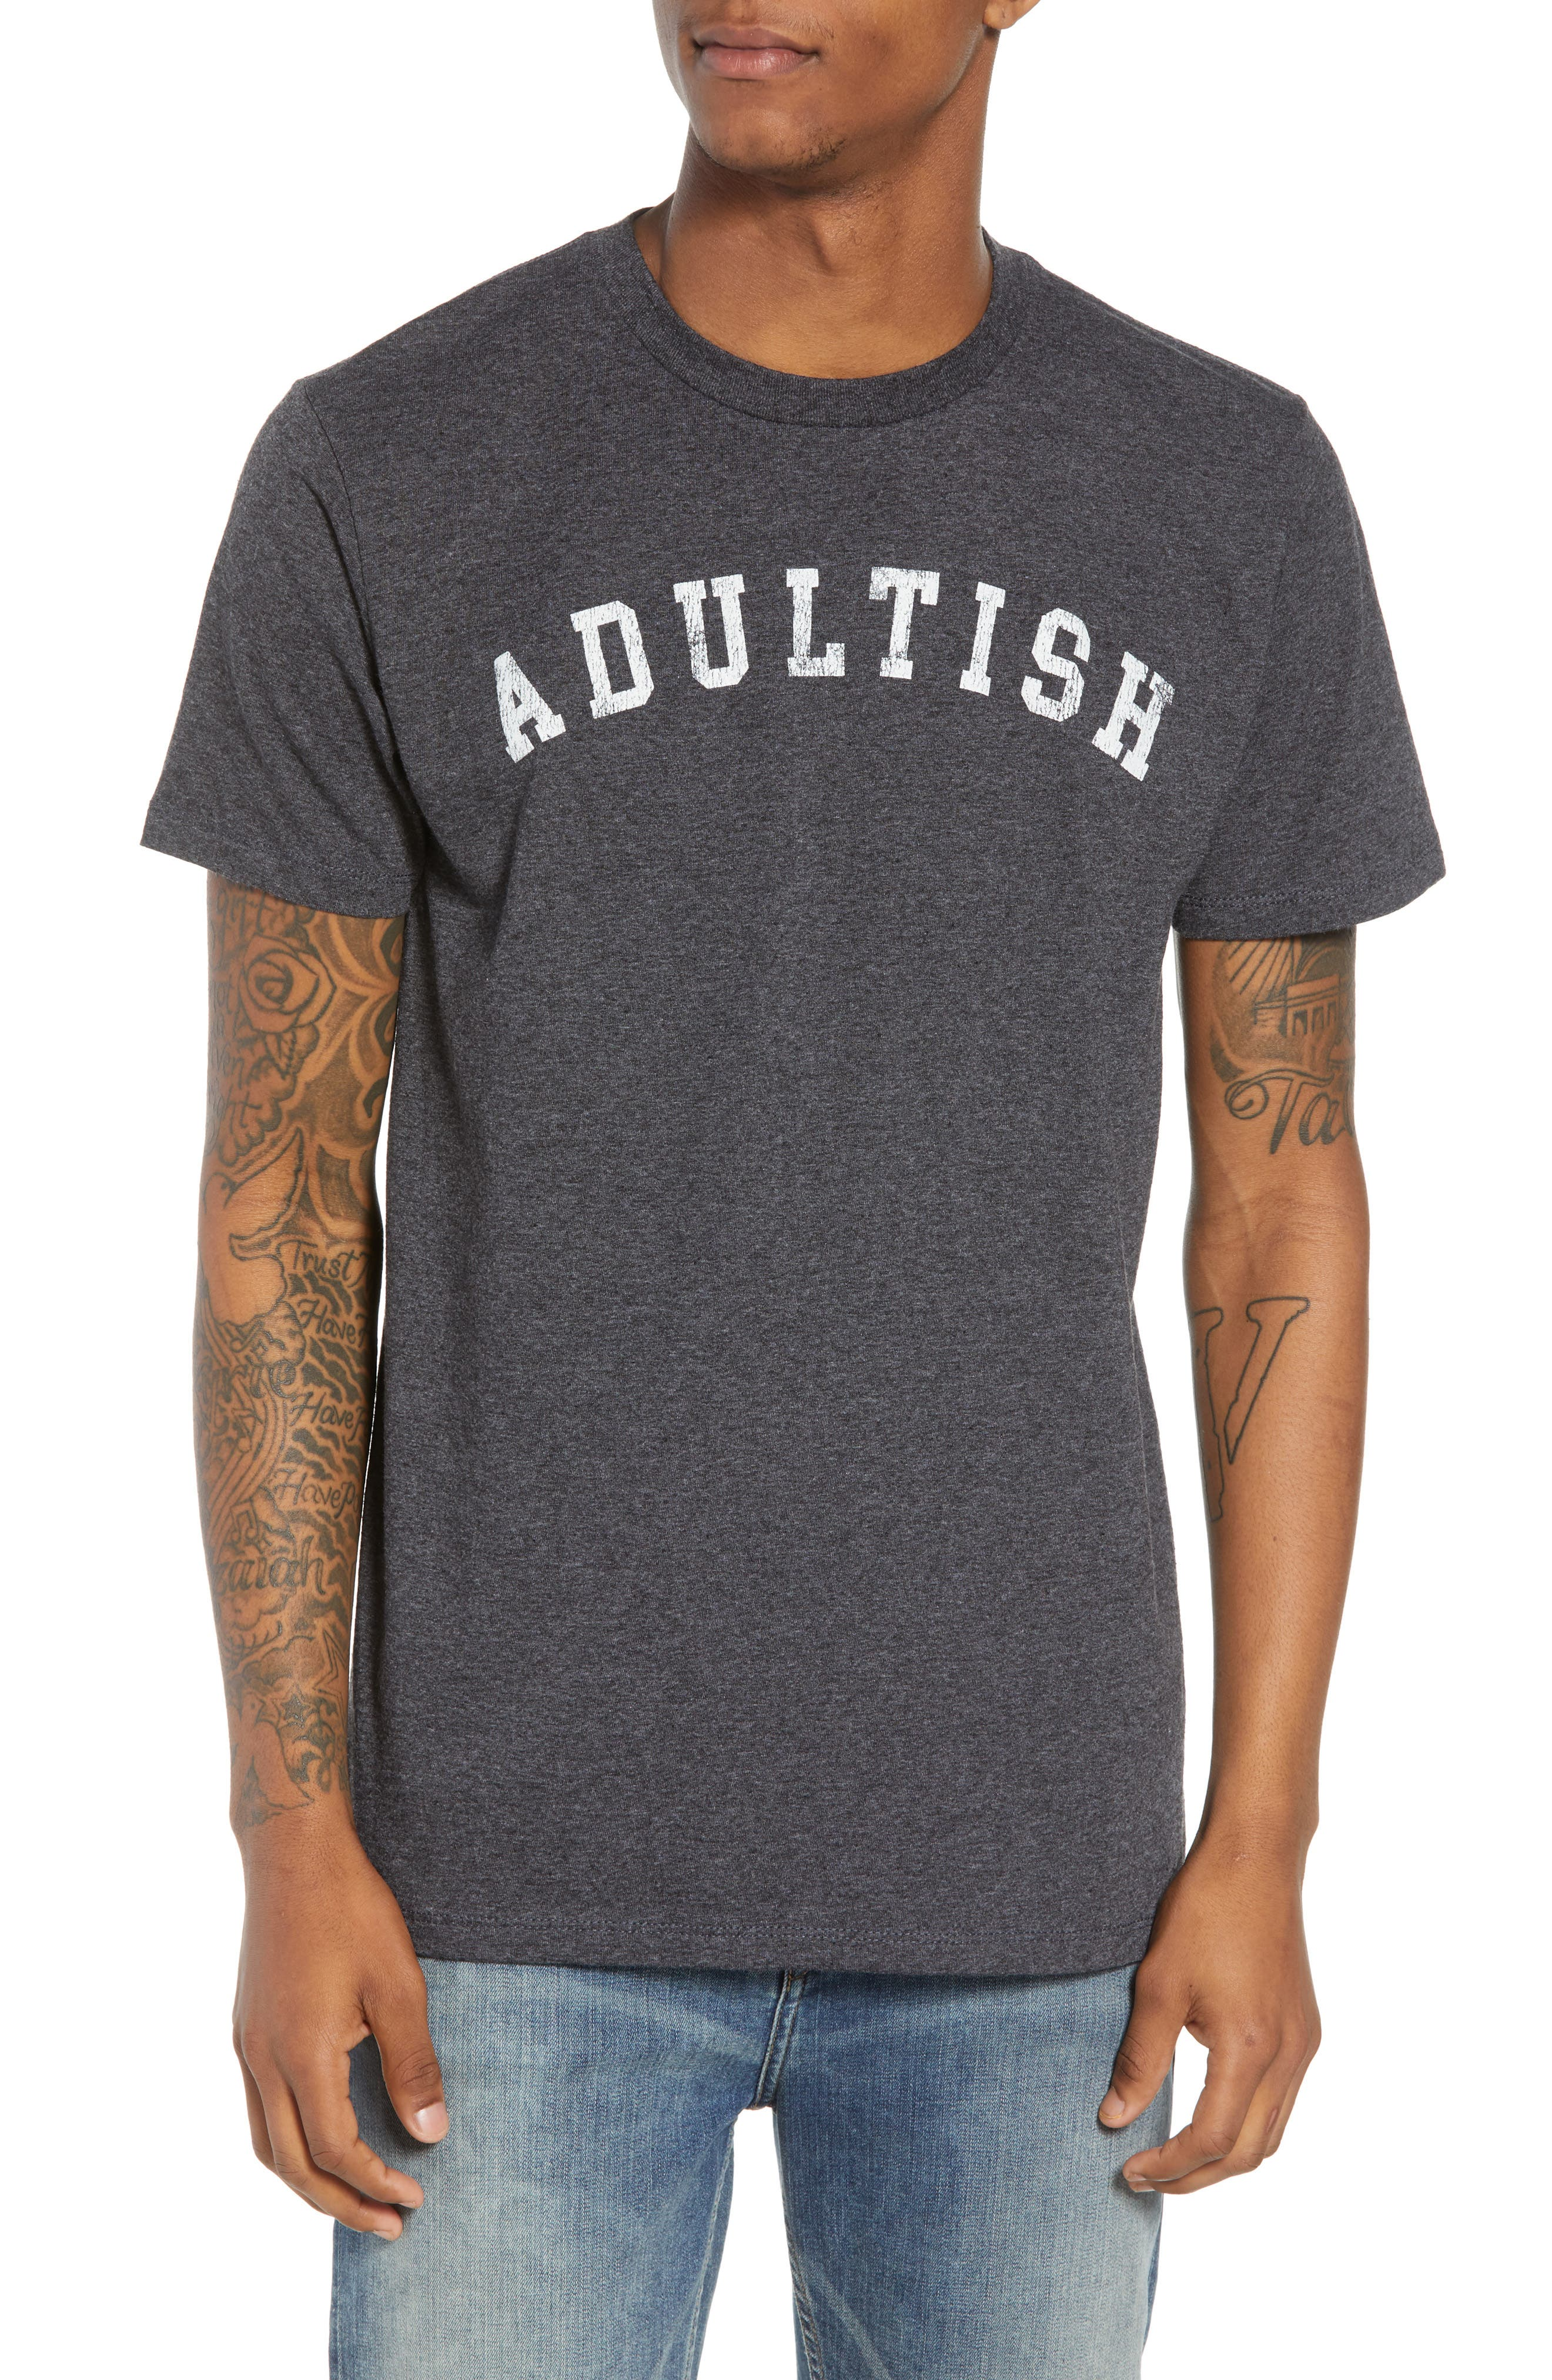 Adultish T-Shirt,                         Main,                         color, 001